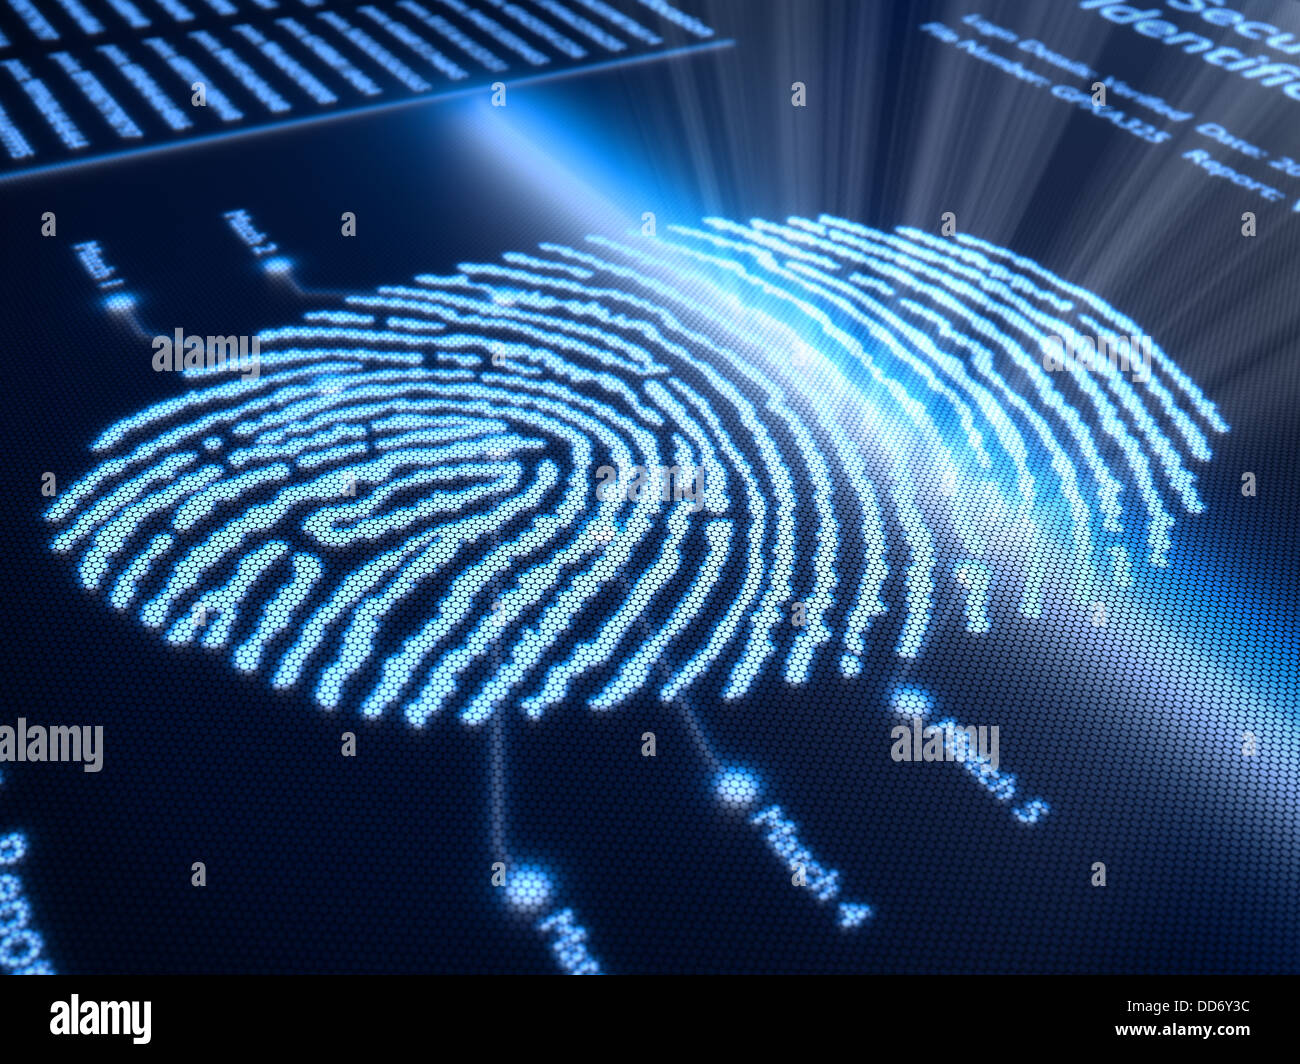 Fingerprint scanning technology on pixellated screen - 3d rendered with slight DOF - Stock Image